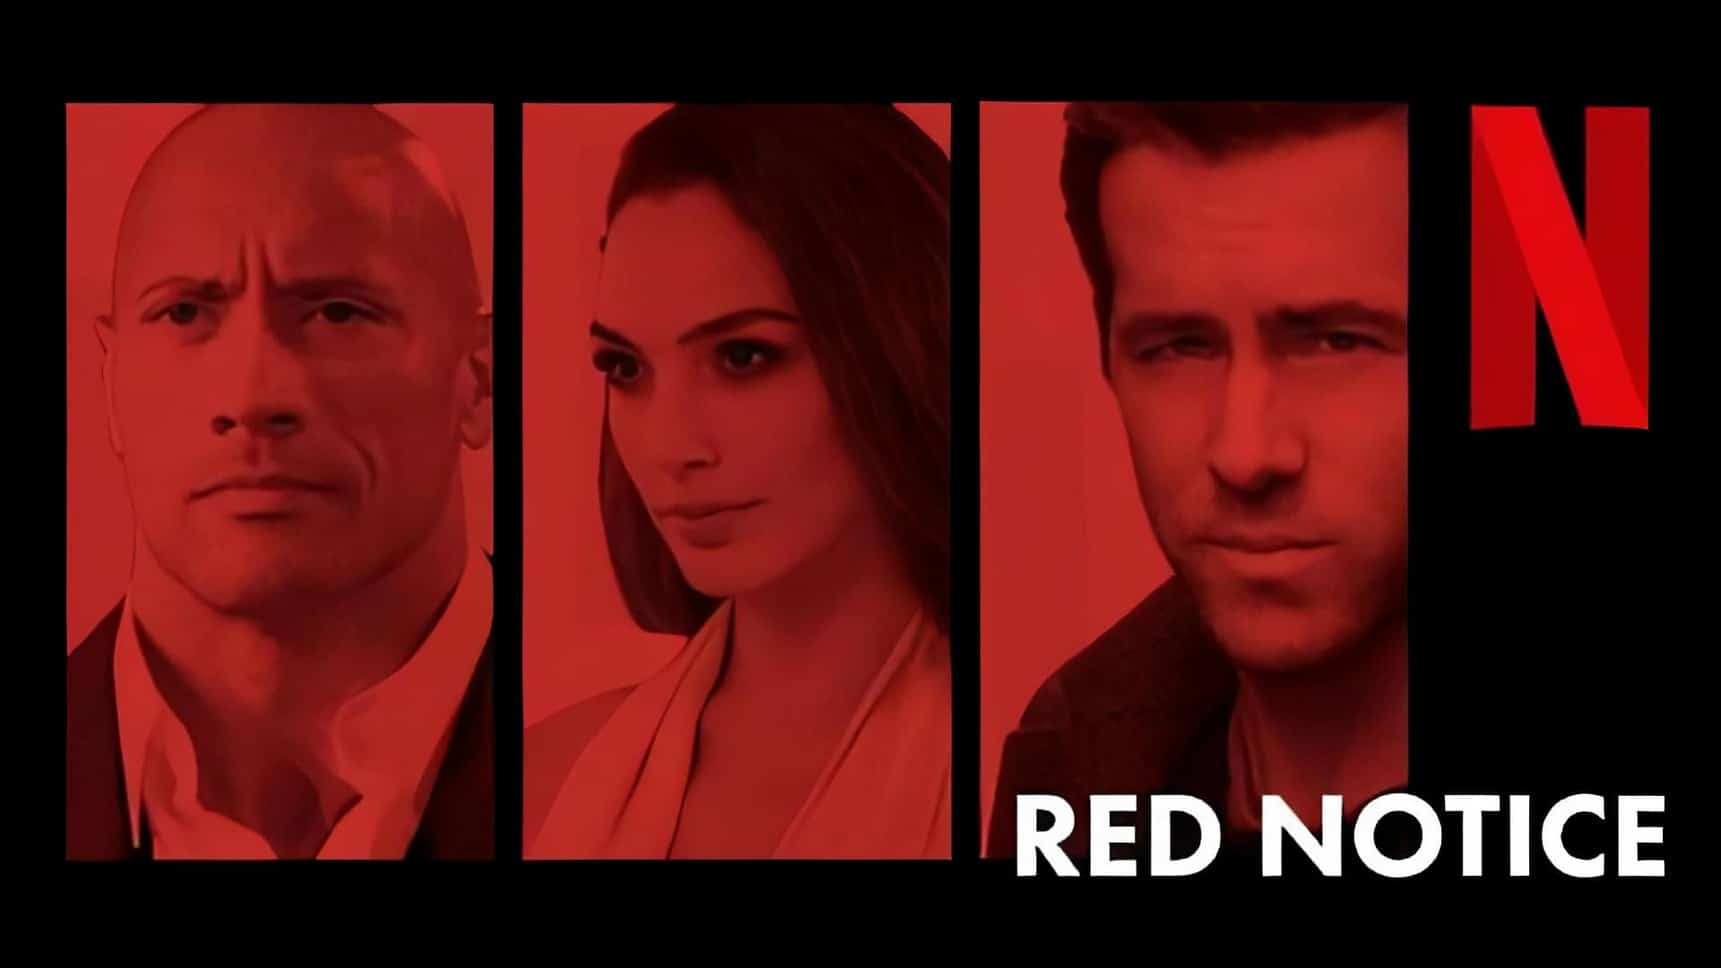 Red Notice Release Date November 2021 on Netflix • The Awesome One